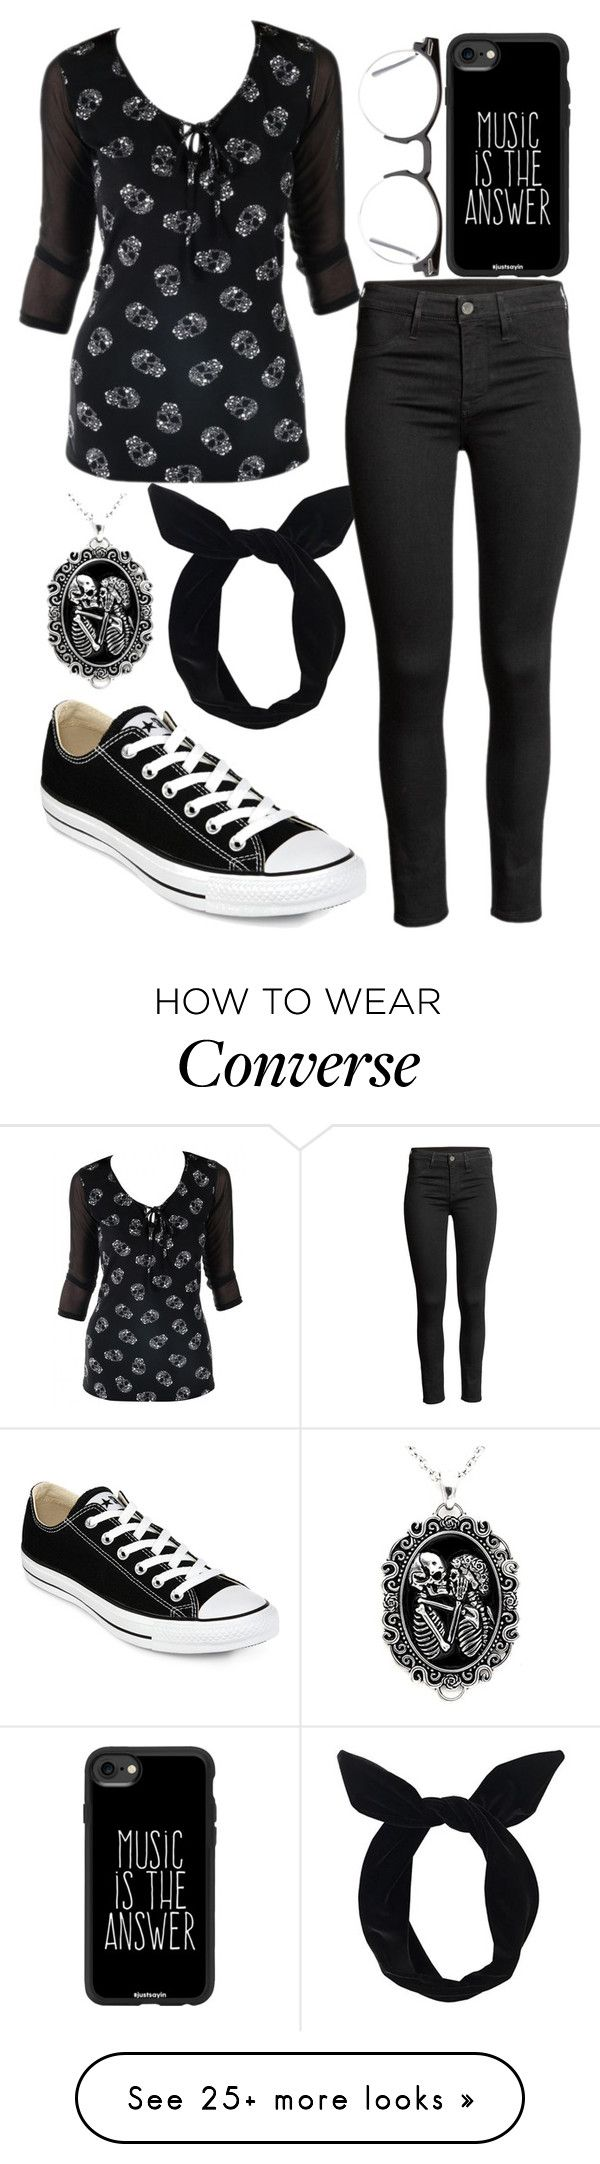 """Dawn my Revolution"" by berryco on Polyvore featuring Lulu in the Sky, Converse, Spitfire, Casetify and allblackoutfit"